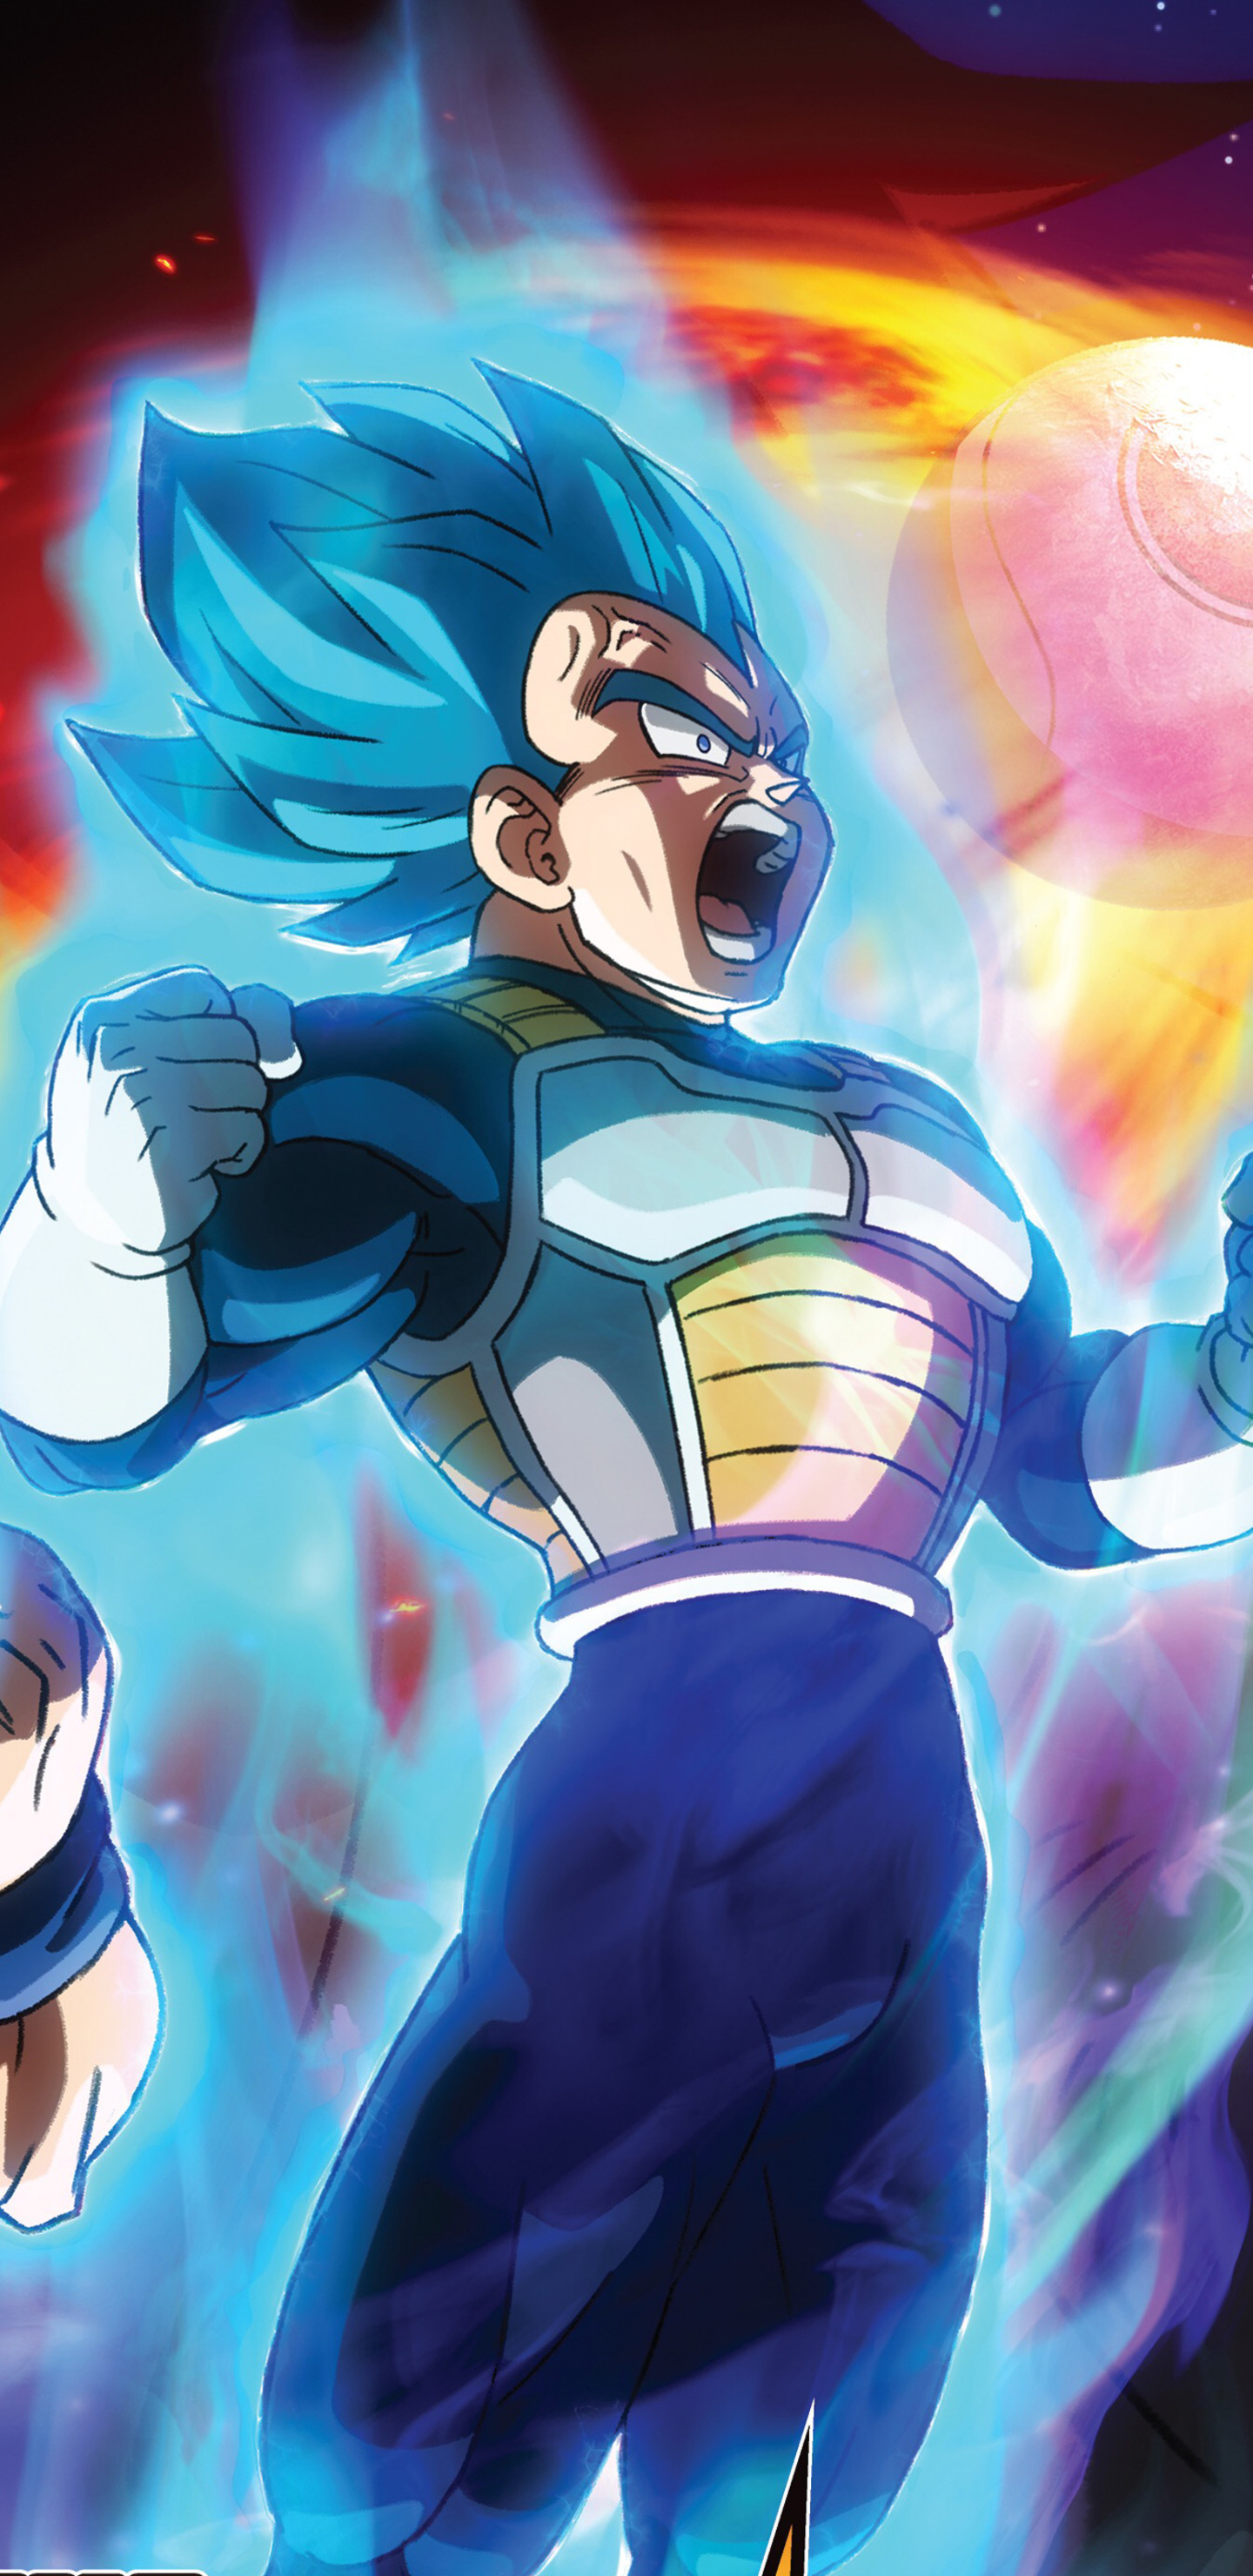 Dragonball Super Broly Movie 1440x2960 Download Hd Wallpaper Wallpapertip